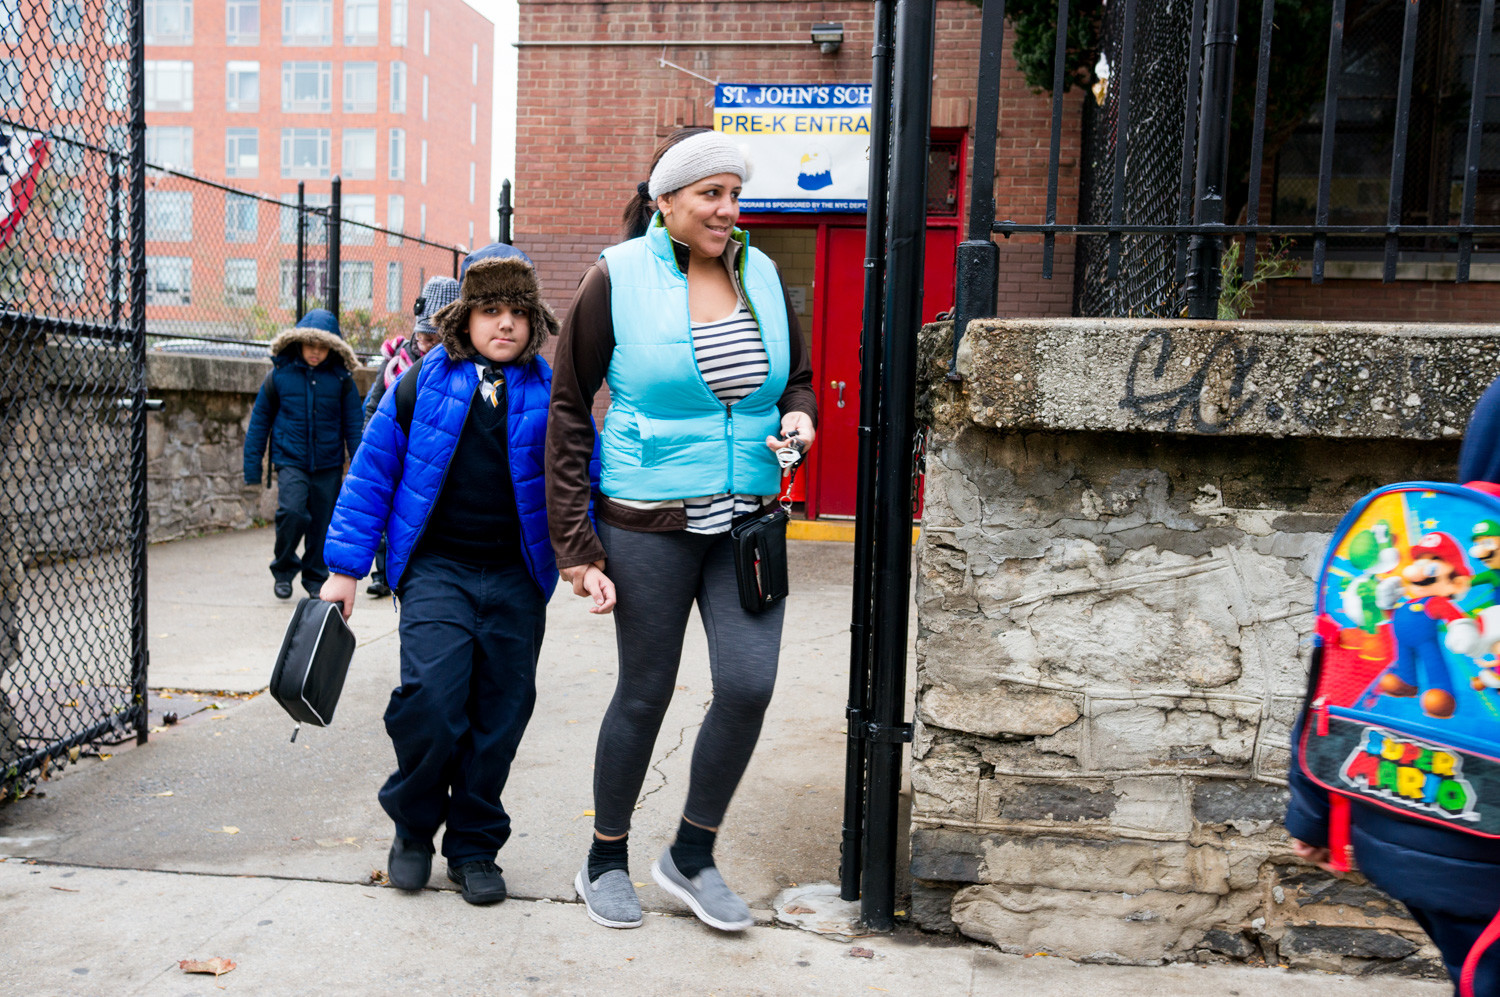 Parents pick up their children from St. John's School in Kingsbridge. After the former principal's surprise departure, the Archdiocese of New York appointed Melissa Cardona-Moore to manage the school. Her leadership has come under scrutiny by at least one parent demanding answers as to why her son was seen walking alone outside the school..